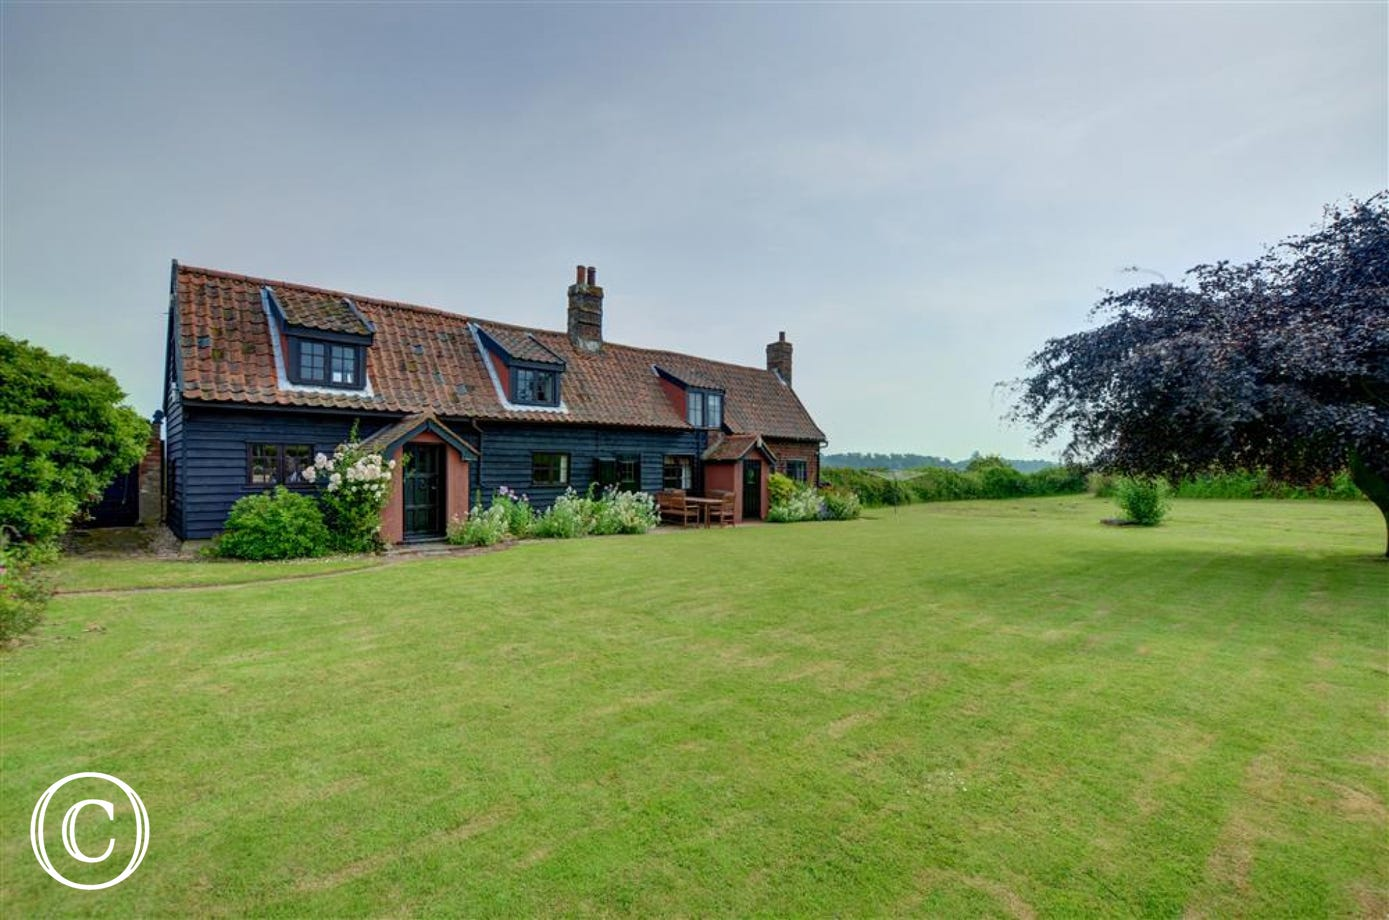 Eelsfoot cottage is a pretty cottage located in the village of Hemley close to Ipswich and close to the river Deben.